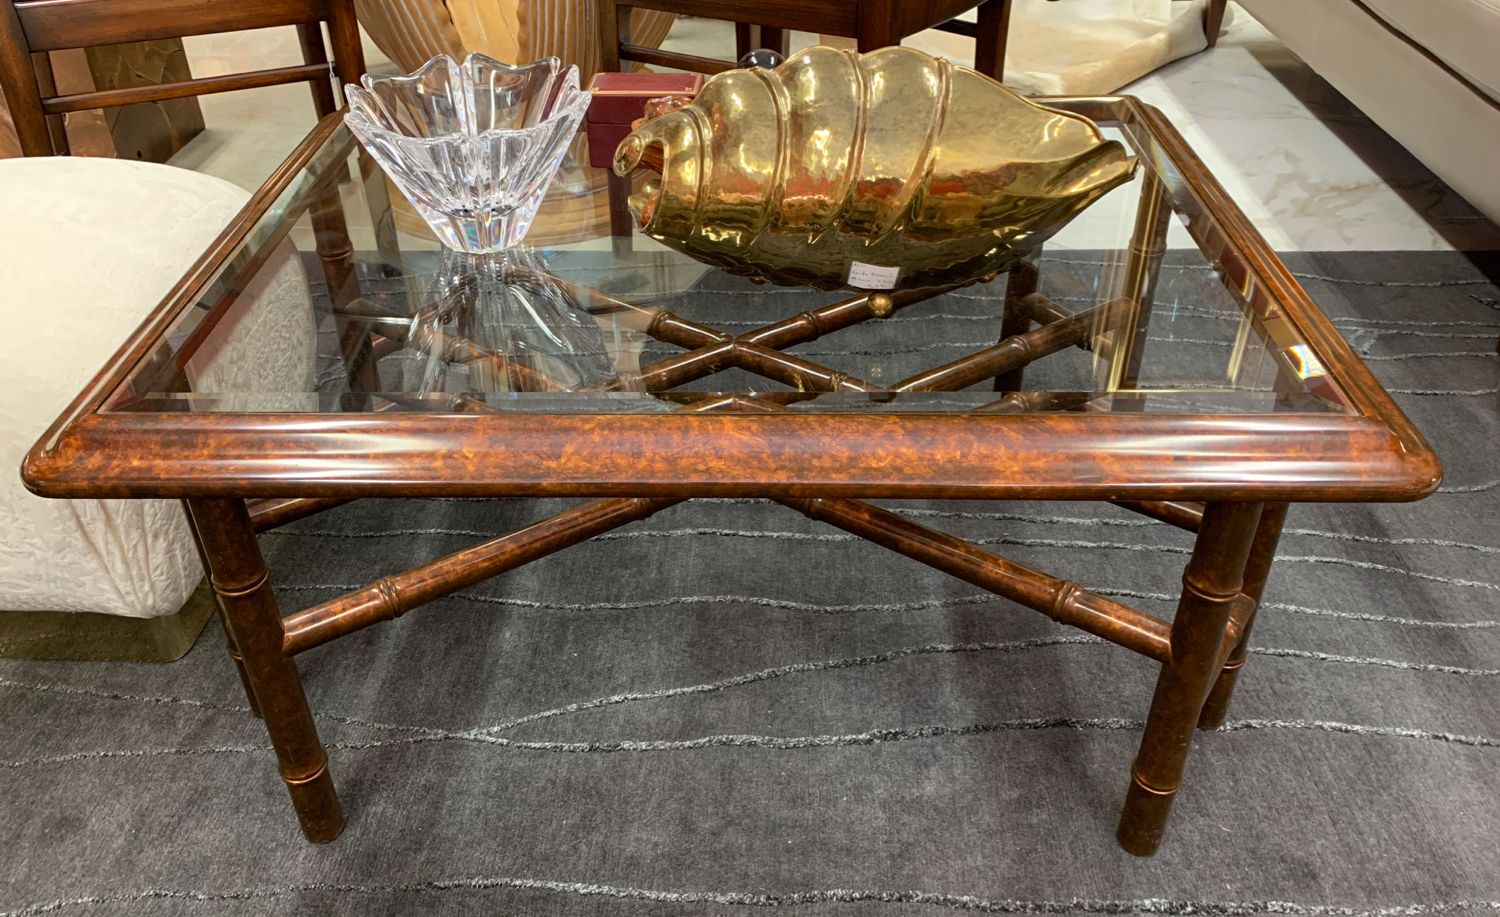 Glass Top Coffee Table Has A Tortoise Shell Finish Sometimes Called Oystering For A Rich Look Faux Bamboo Legs An Sell Used Furniture Coffee Table Furniture [ 917 x 1500 Pixel ]